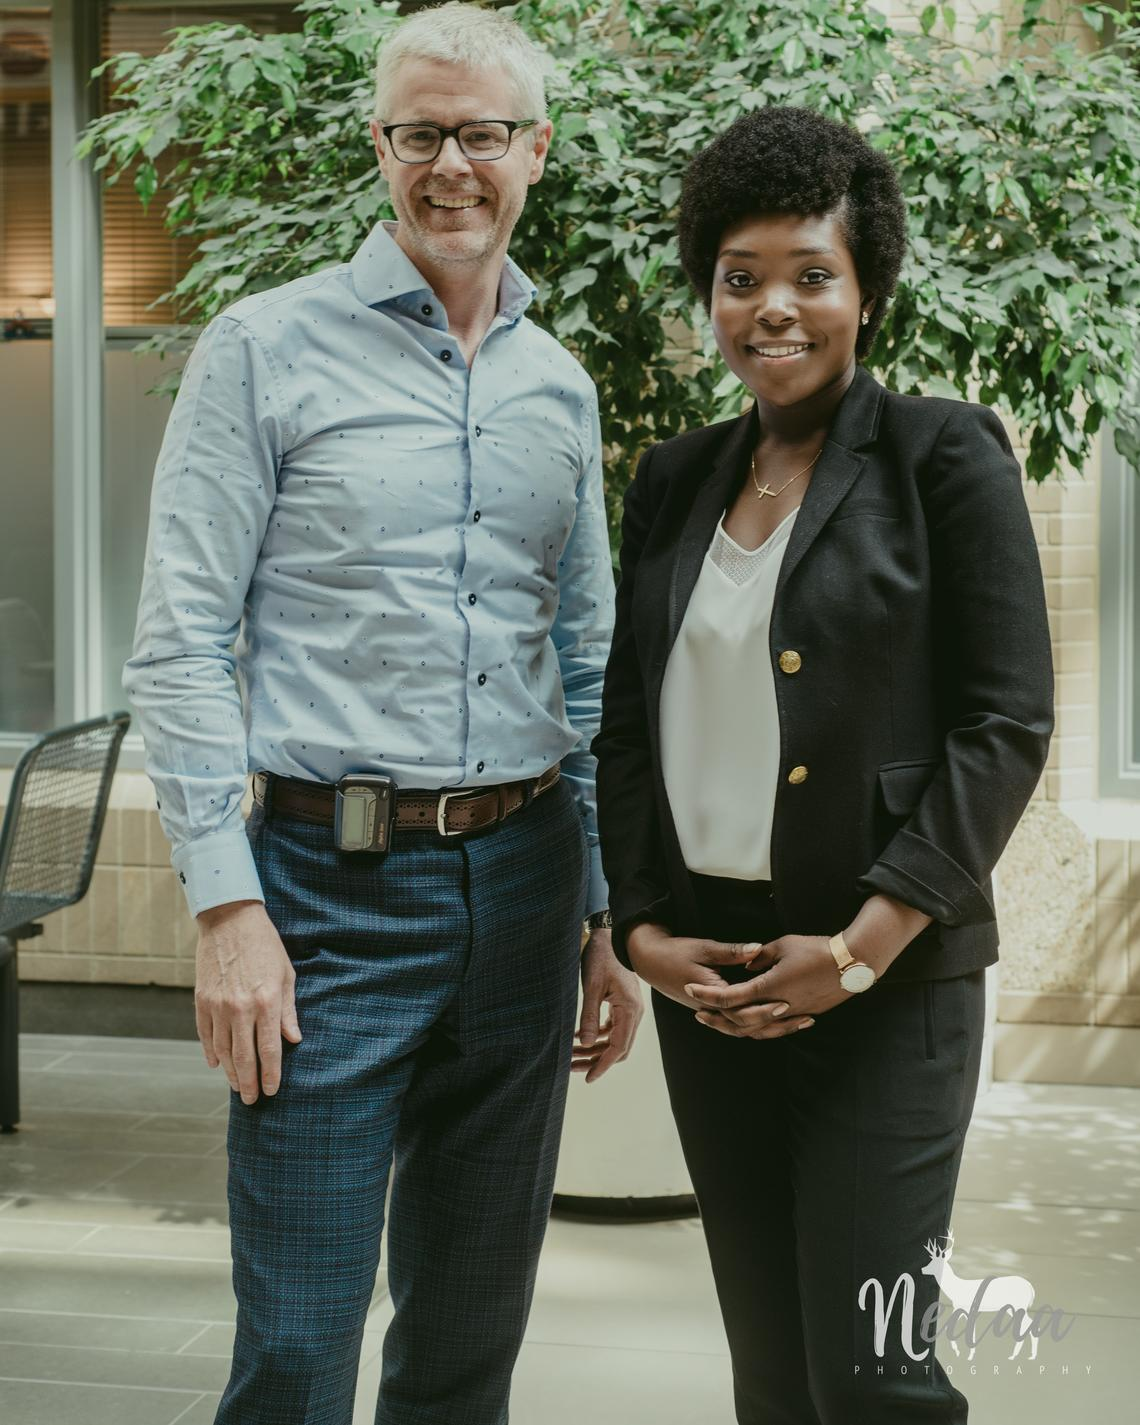 The University of Calgary's Andrew Daly performed the stem cell transplant that cured Revée Agyepong's sickle cell anemia.